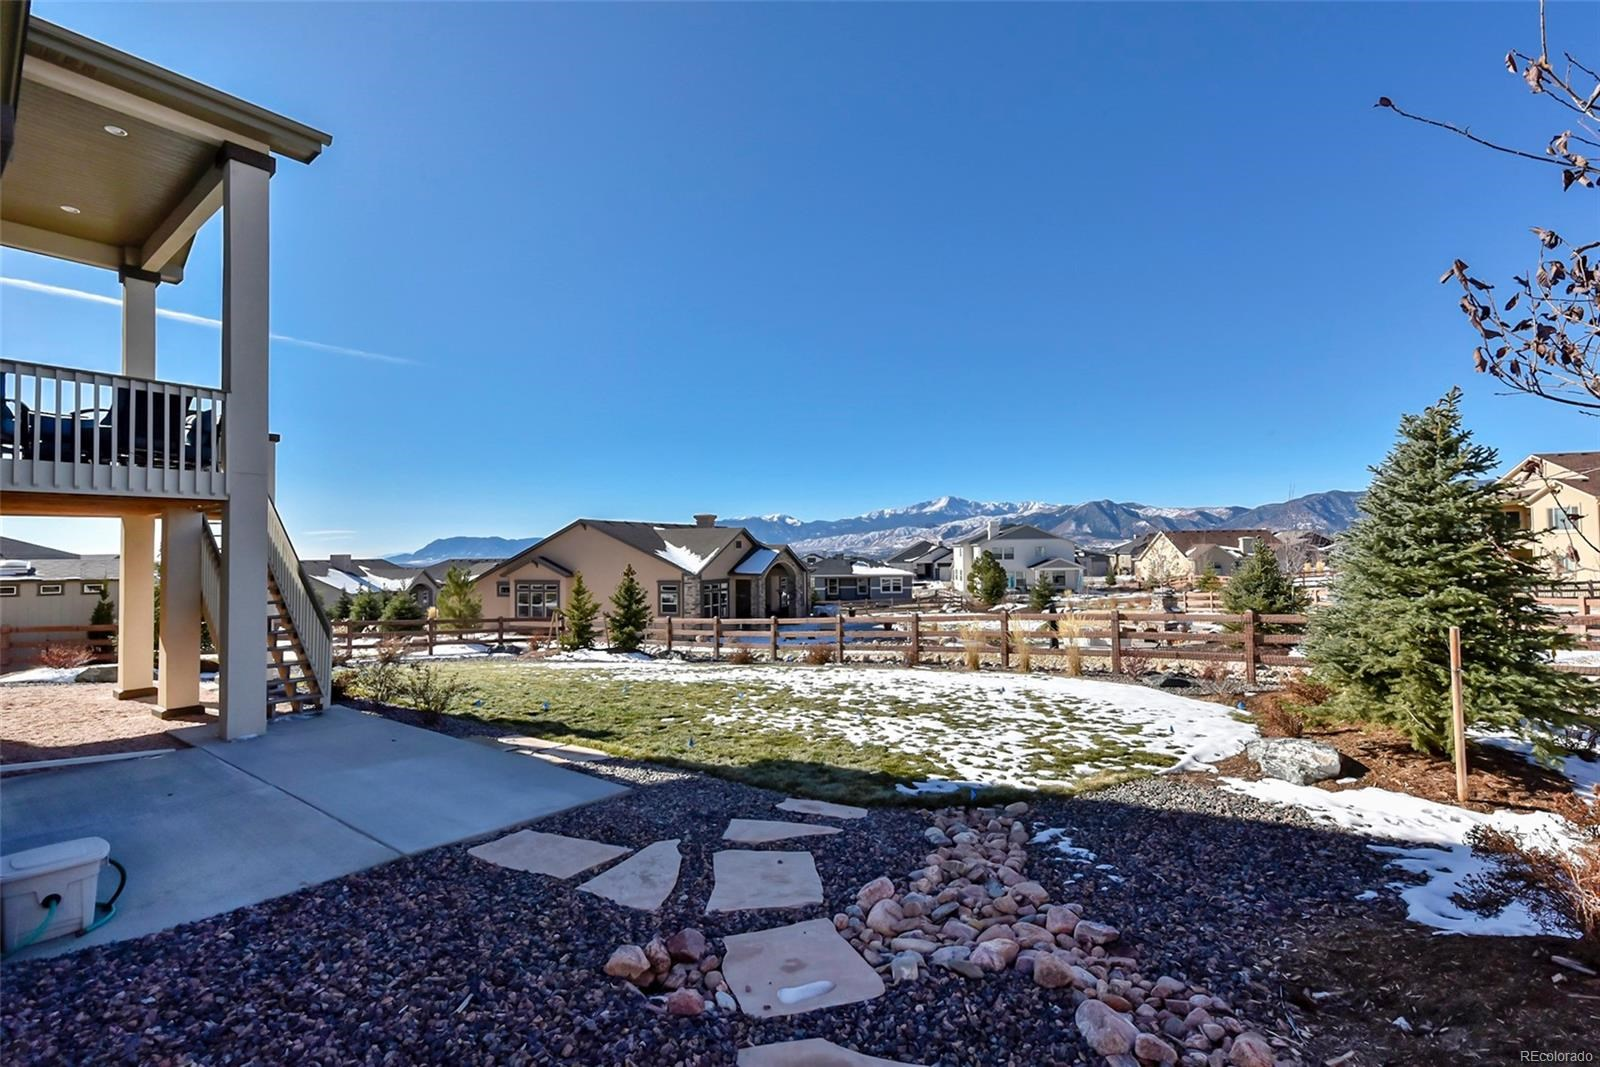 MLS# 6490678 - 12474 Carmel Ridge Road, Colorado Springs, CO 80921